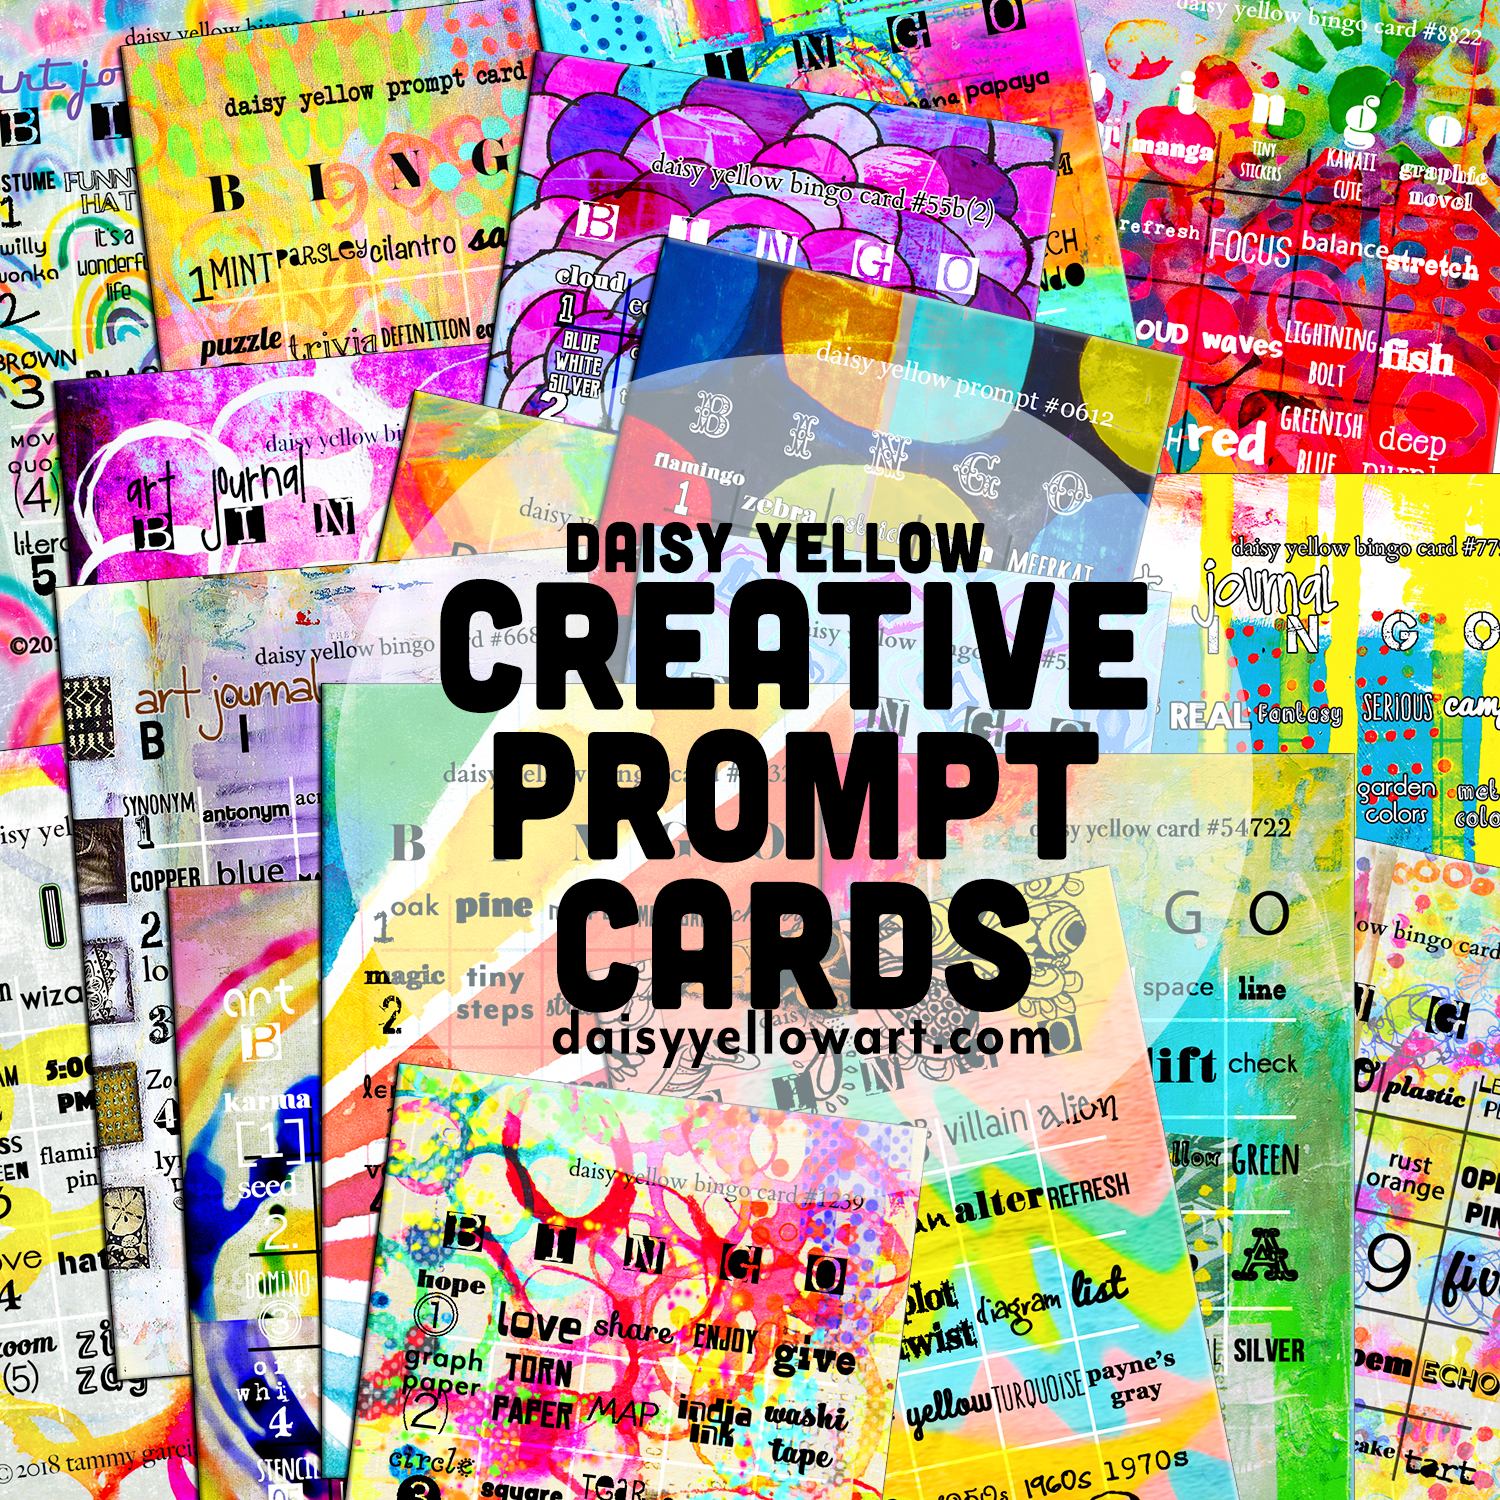 Creative Prompt Cards by Daisy Yellow https://daisyyellowart.com